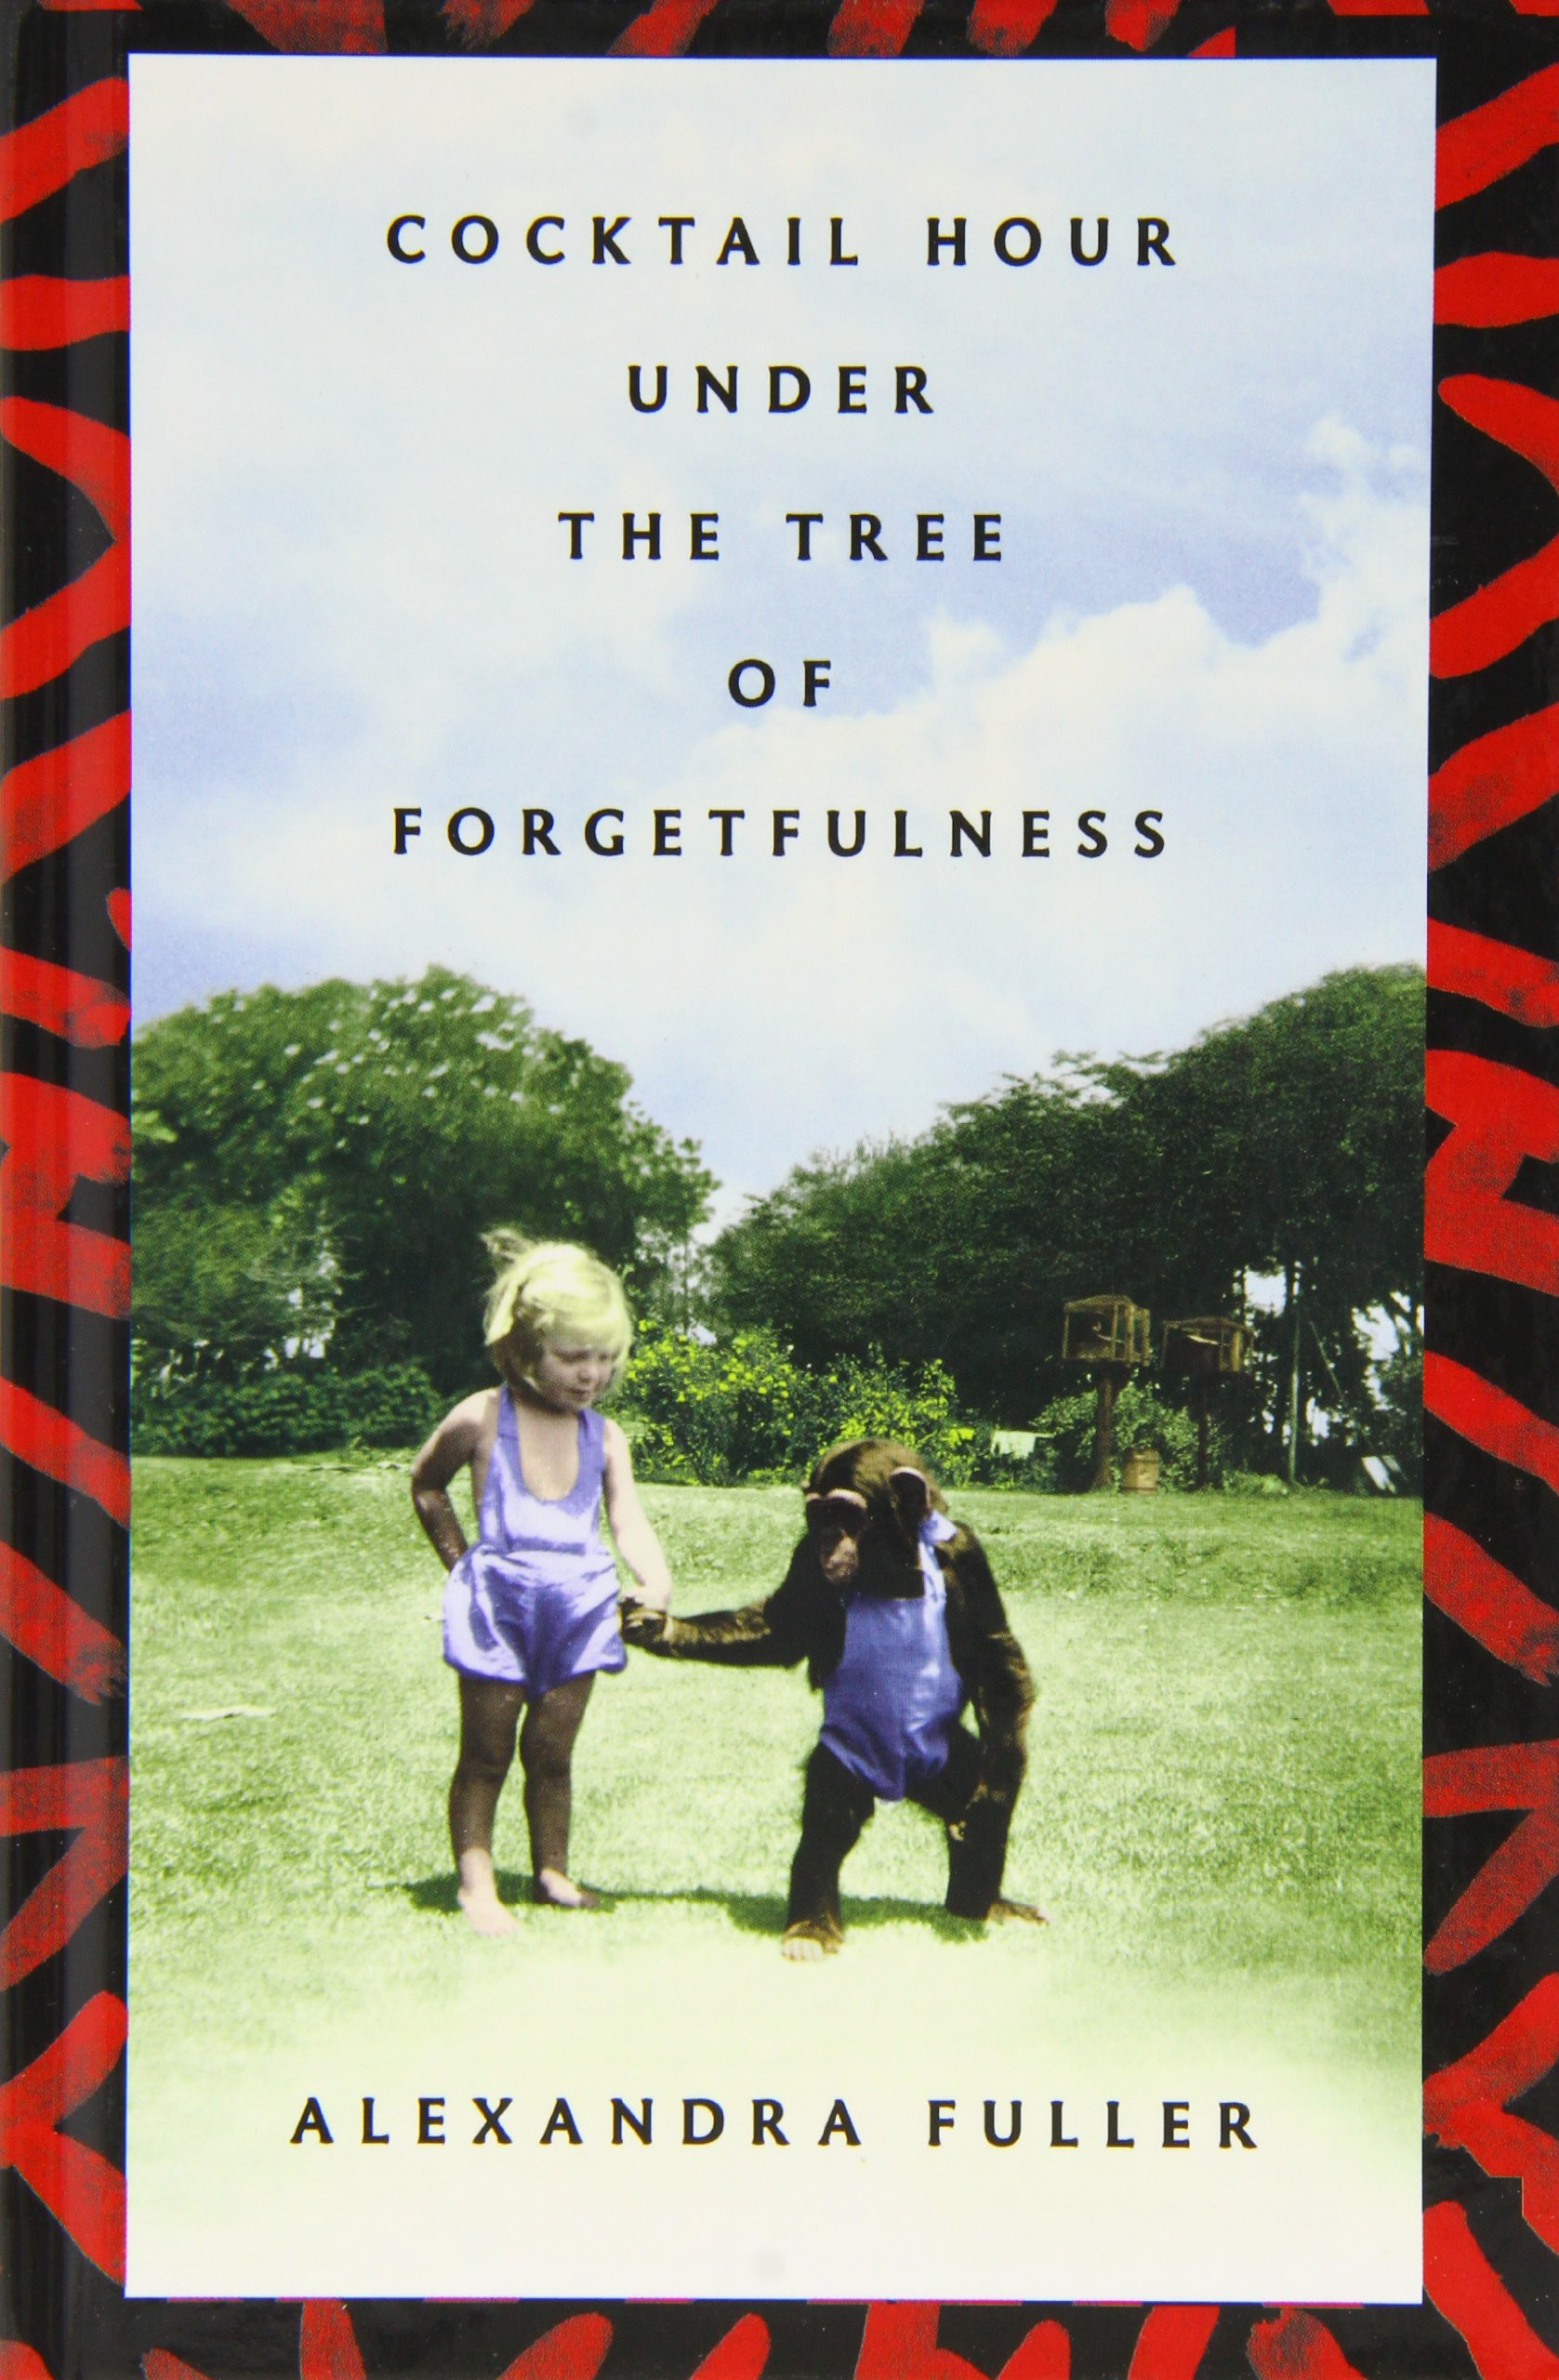 Cocktail Hour Under The Tree Of Forgetfulness (Thorndike Press Large Print Popular and Narrative Nonfiction Series) PDF ePub fb2 book